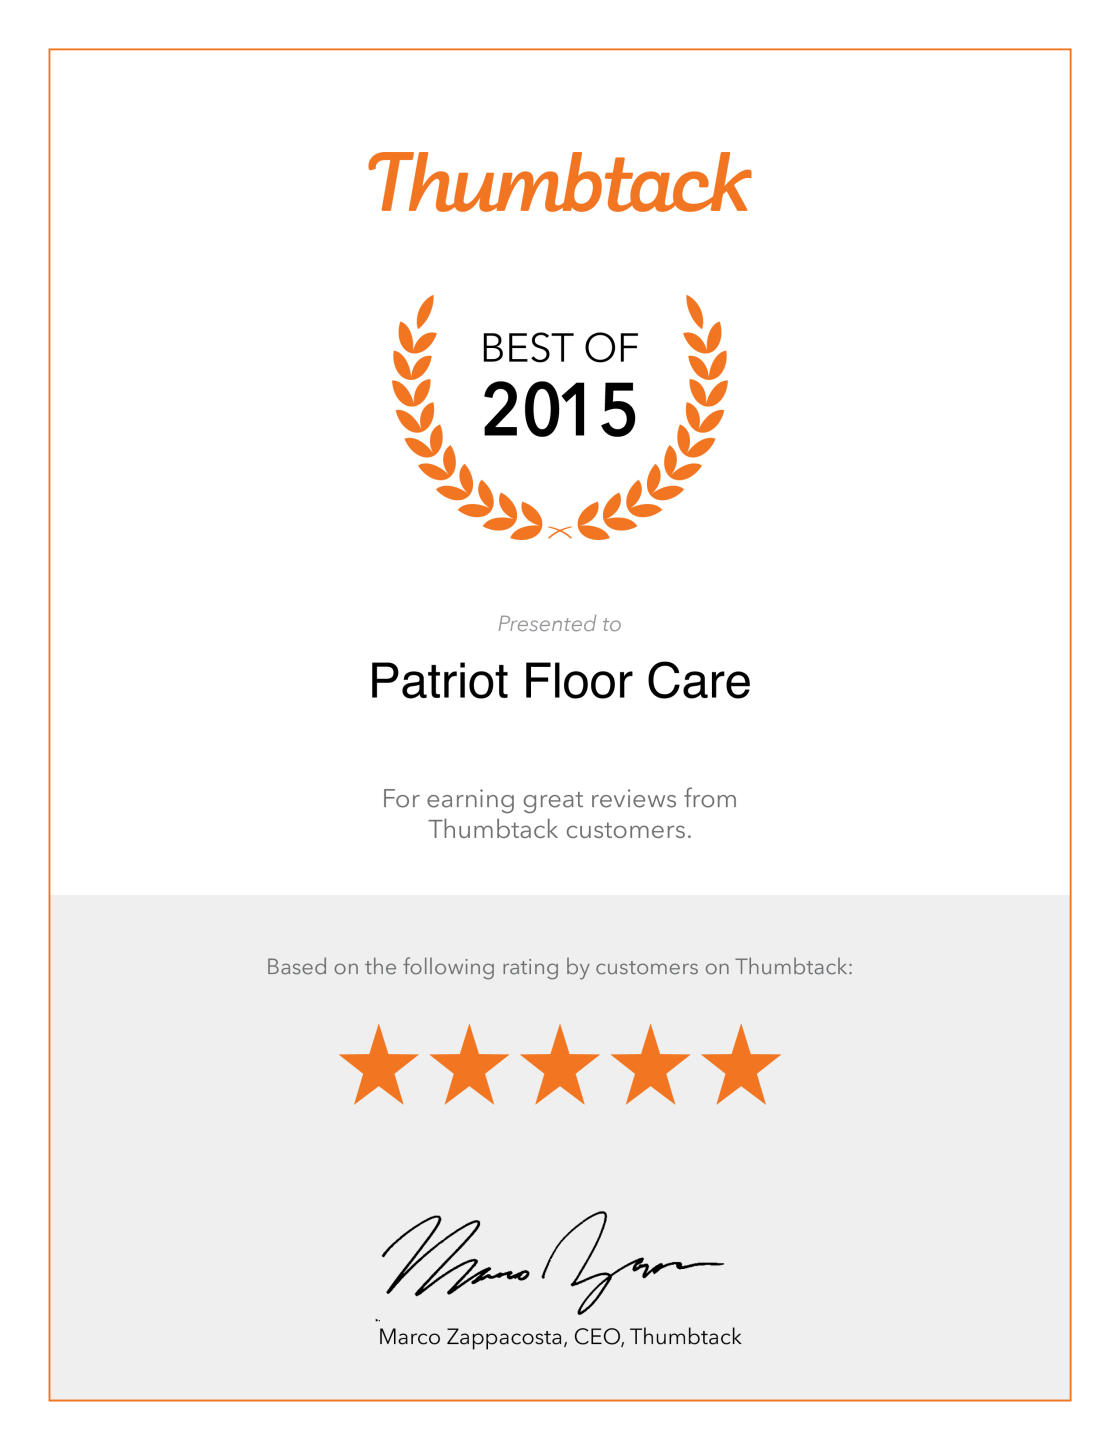 Best_of_2015_5_star_Patriot_Floor_Care_1_d1450